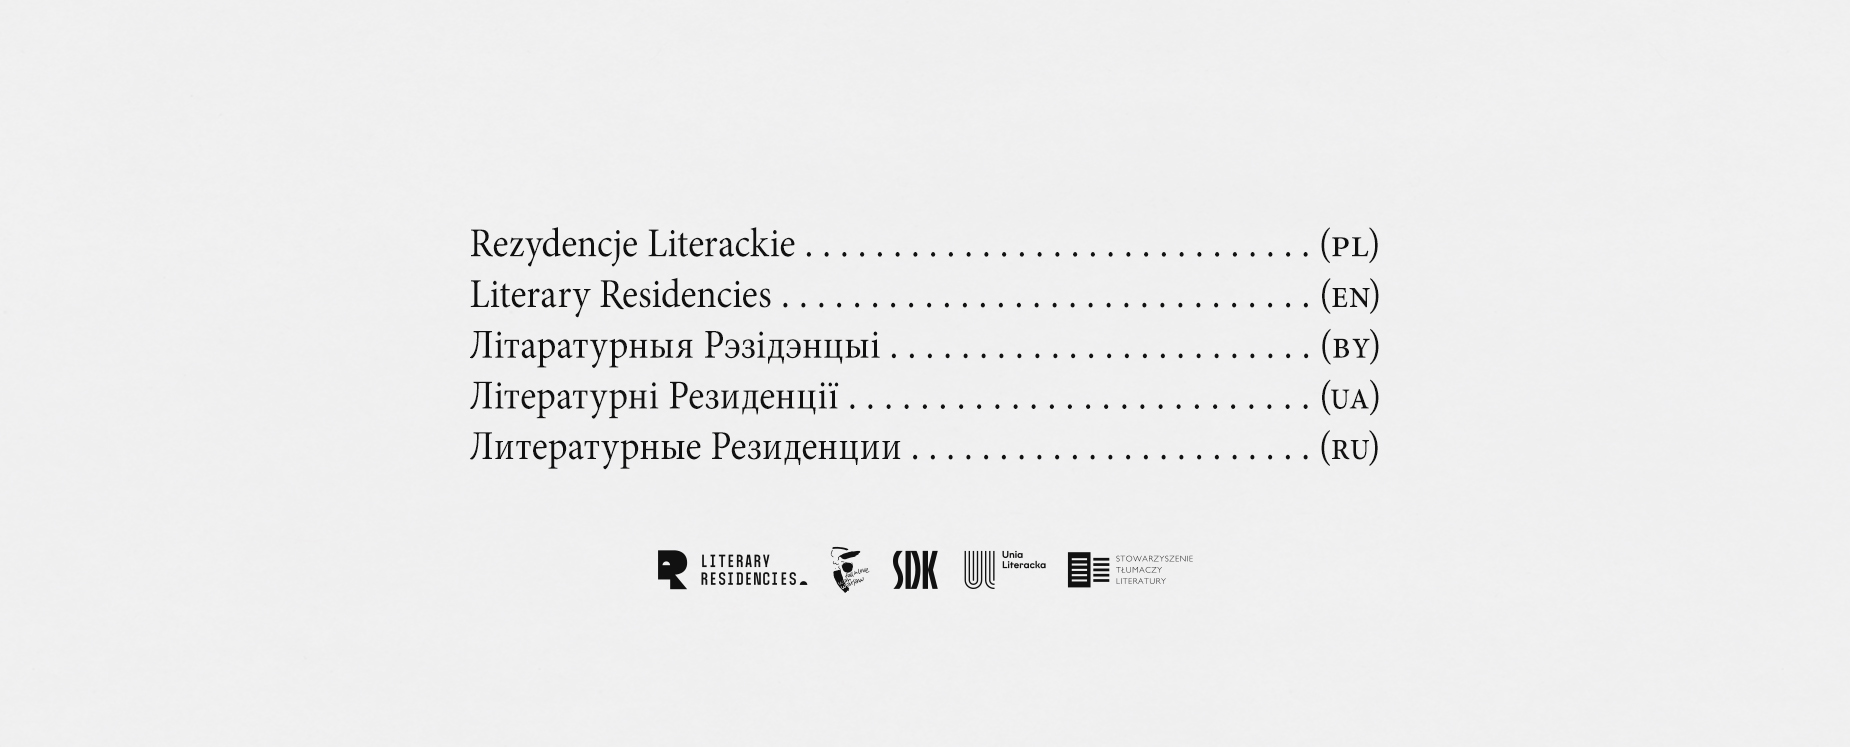 Obraz w sliderze - RESULTS OF AN OPEN CALL FOR LITERARY RESIDENCES